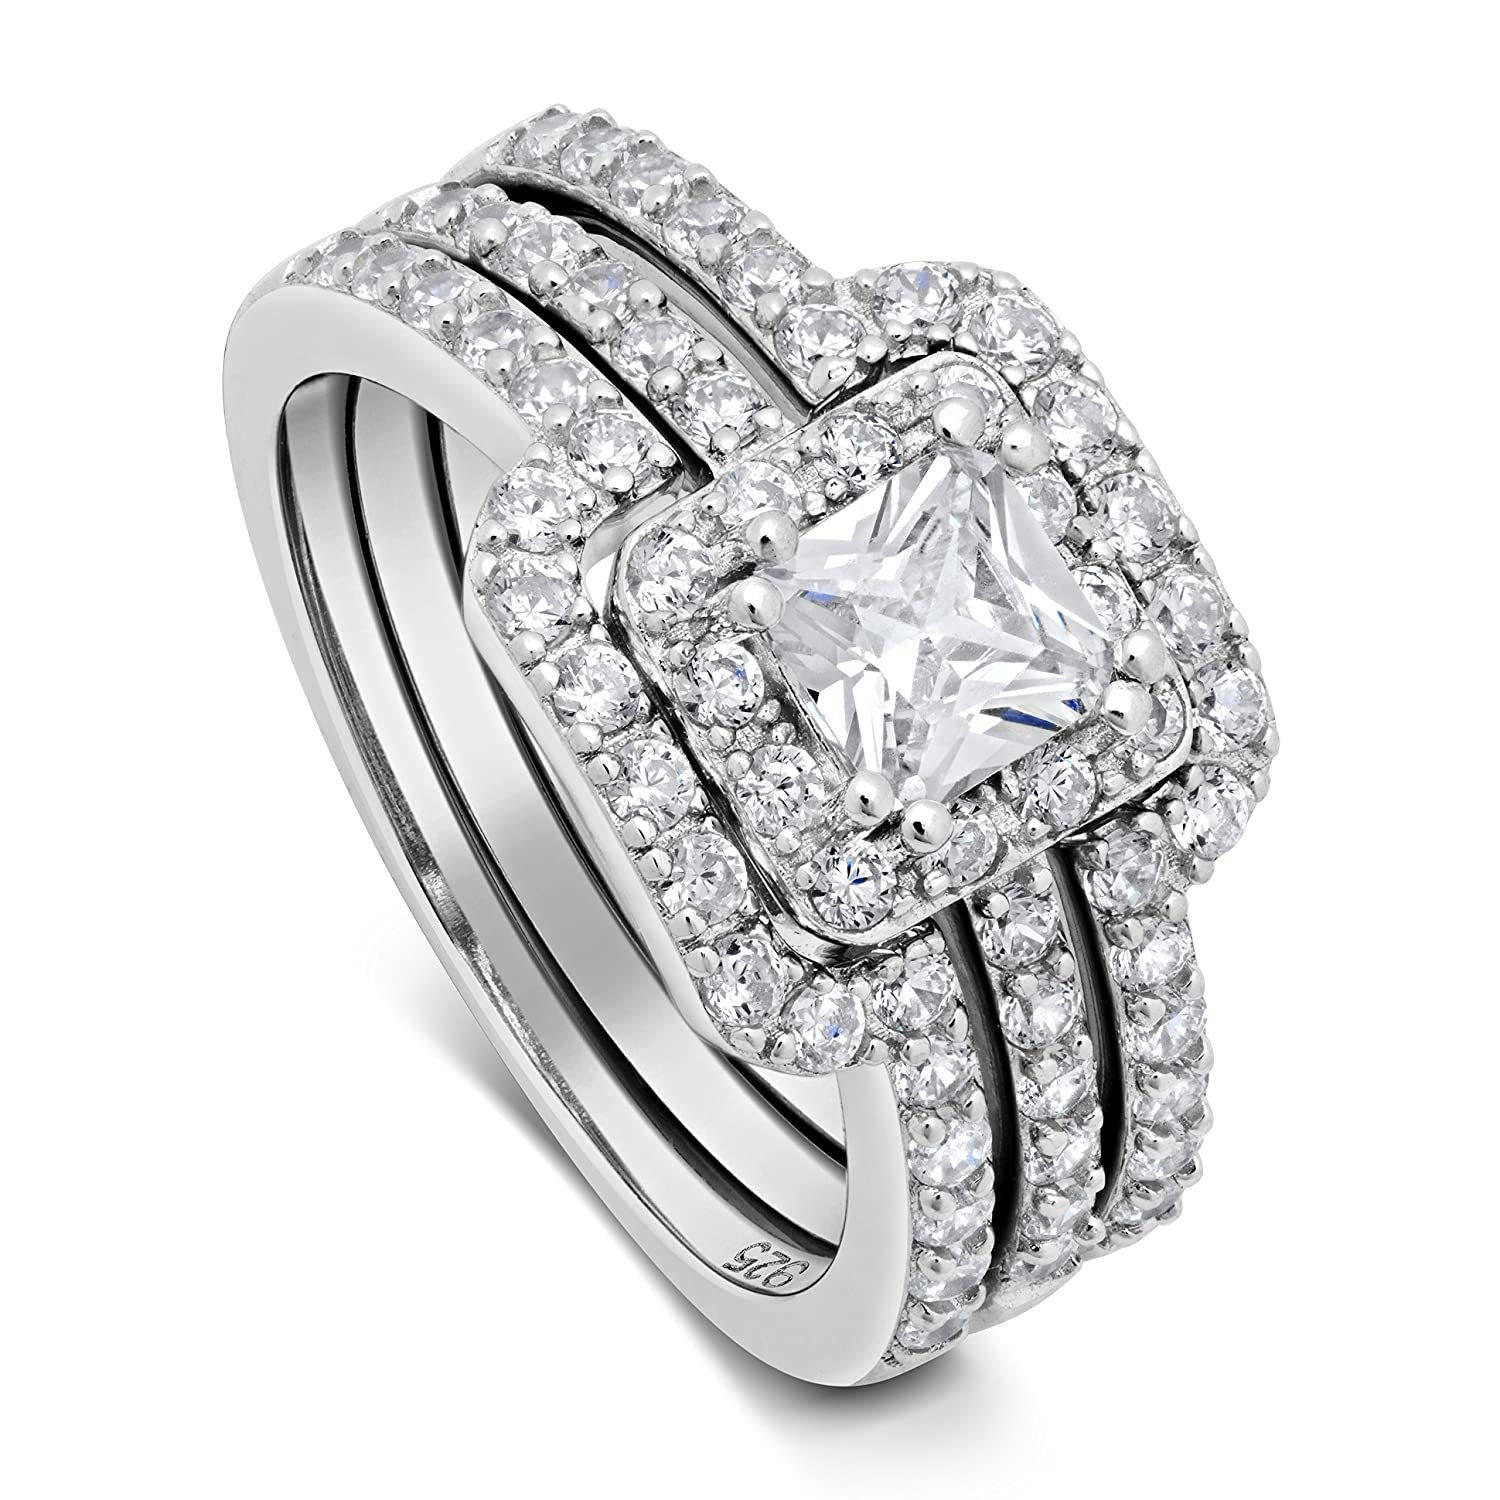 cz ring engagement rs size jewelry ct women for cut princess cl silver rings sterling bling